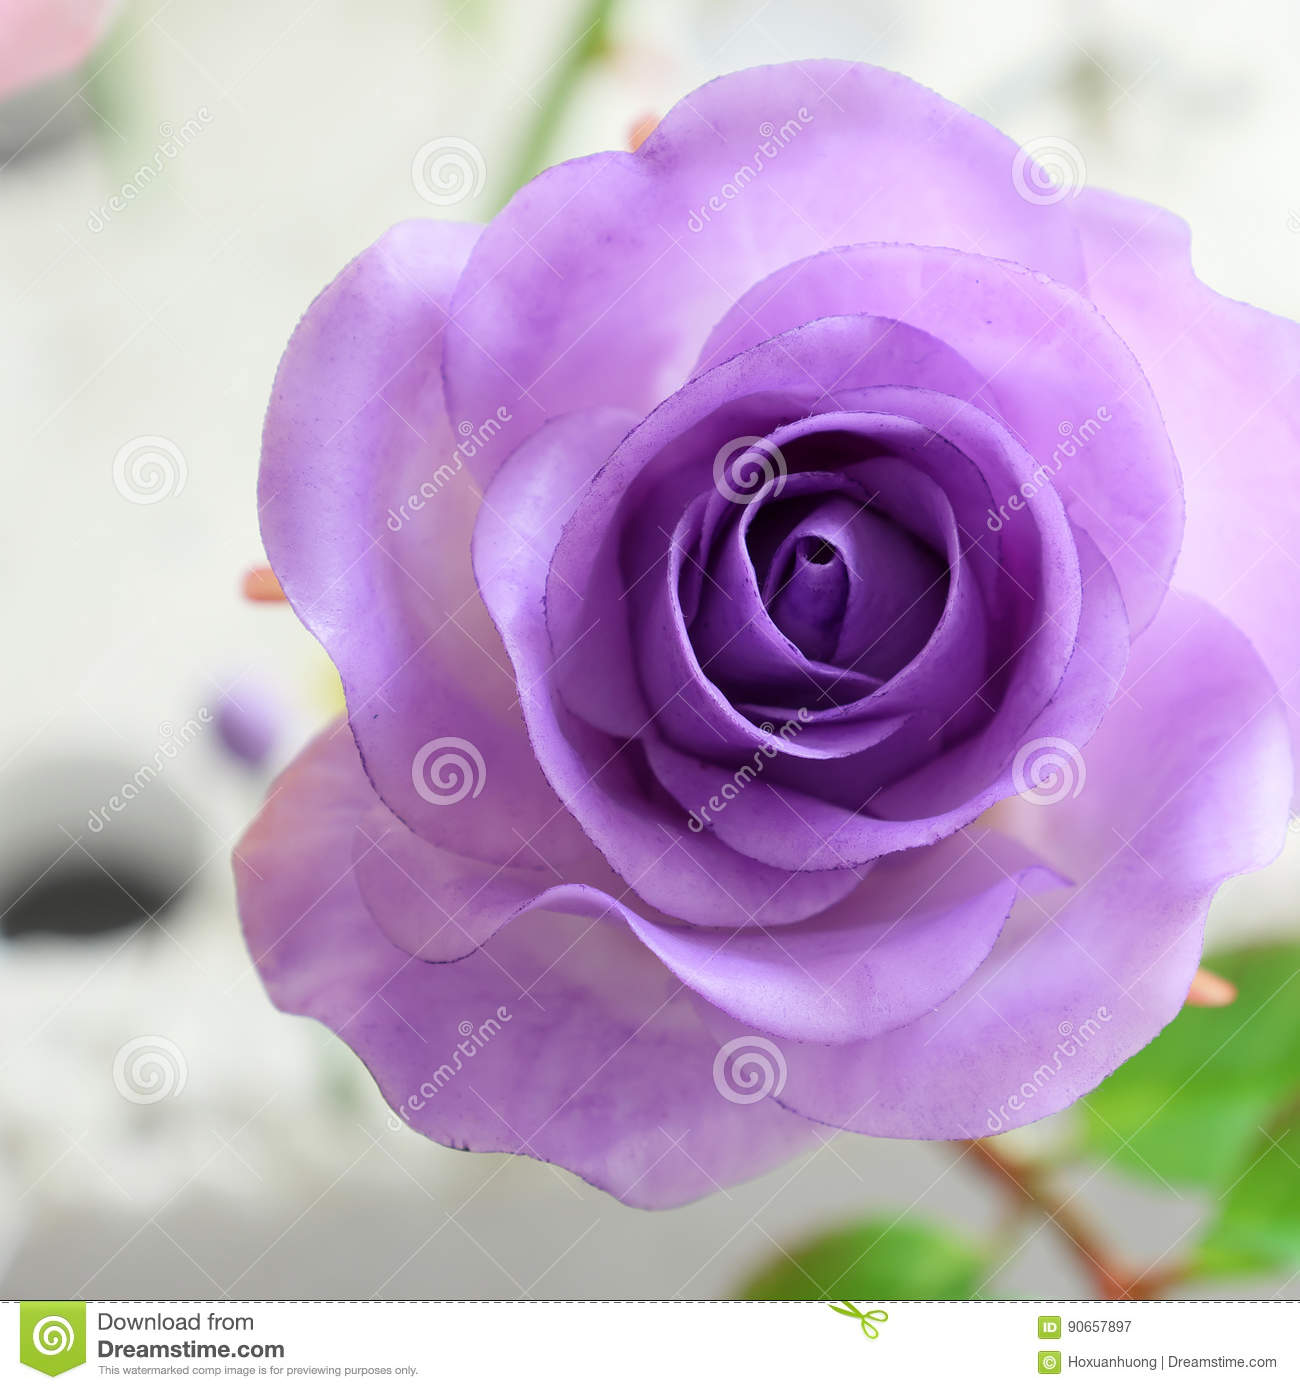 Close up of violet rose flower stock image image of nice handmade wonderful clay art close up of violet rose flower beautiful artificial flowers of craftsmanship with skillful izmirmasajfo